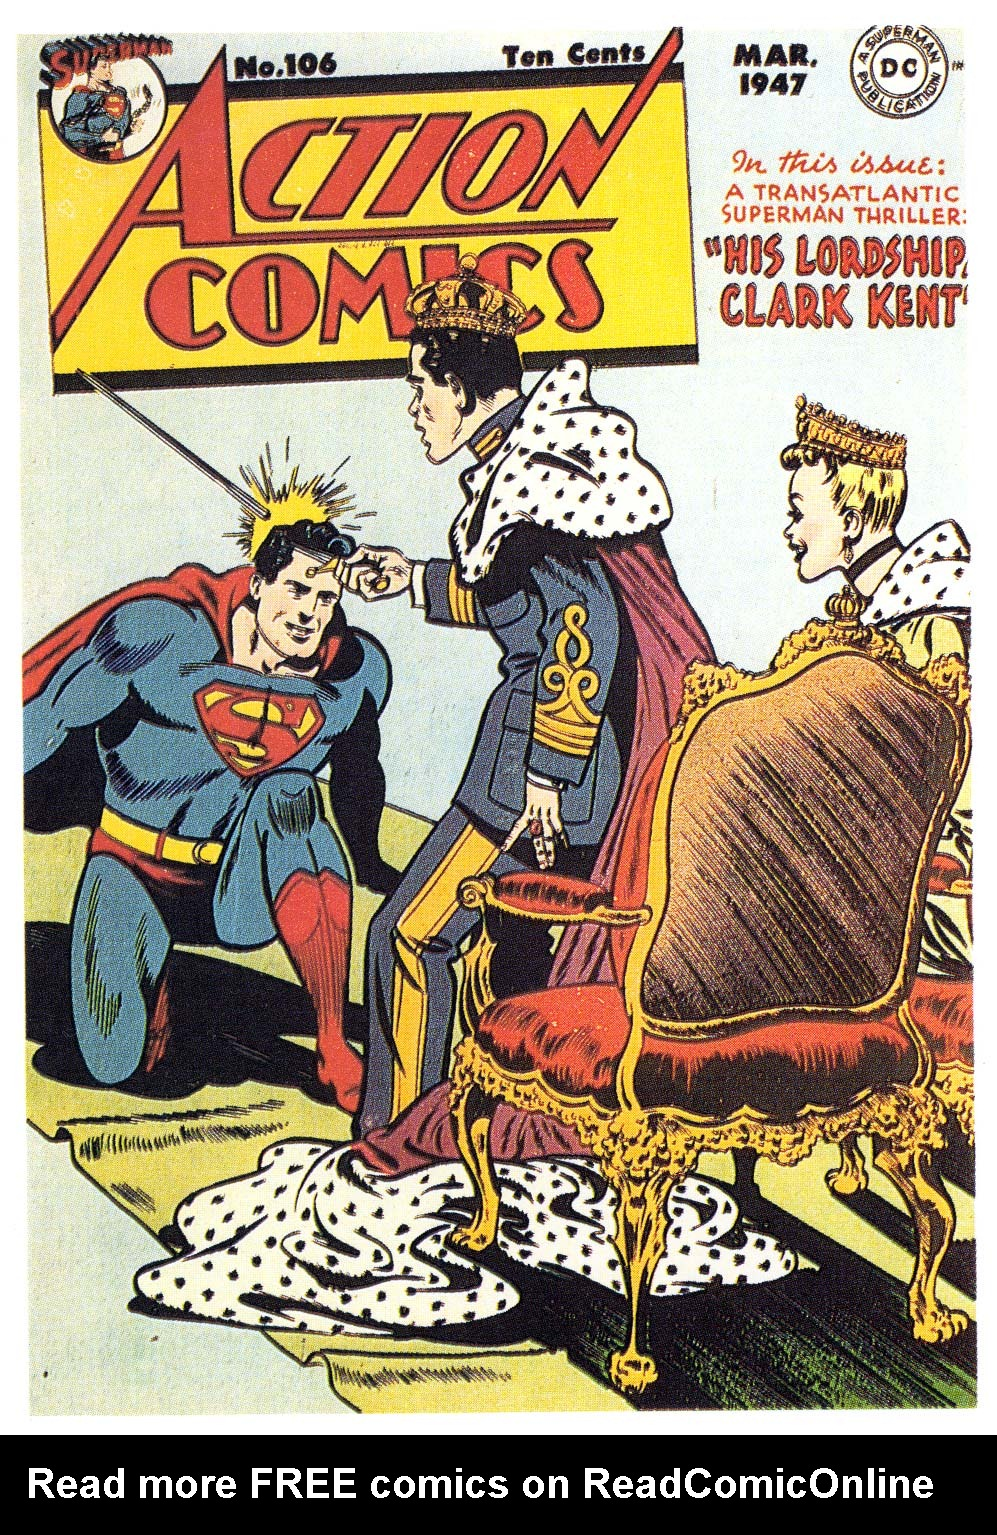 Read online Action Comics (1938) comic -  Issue #106 - 1